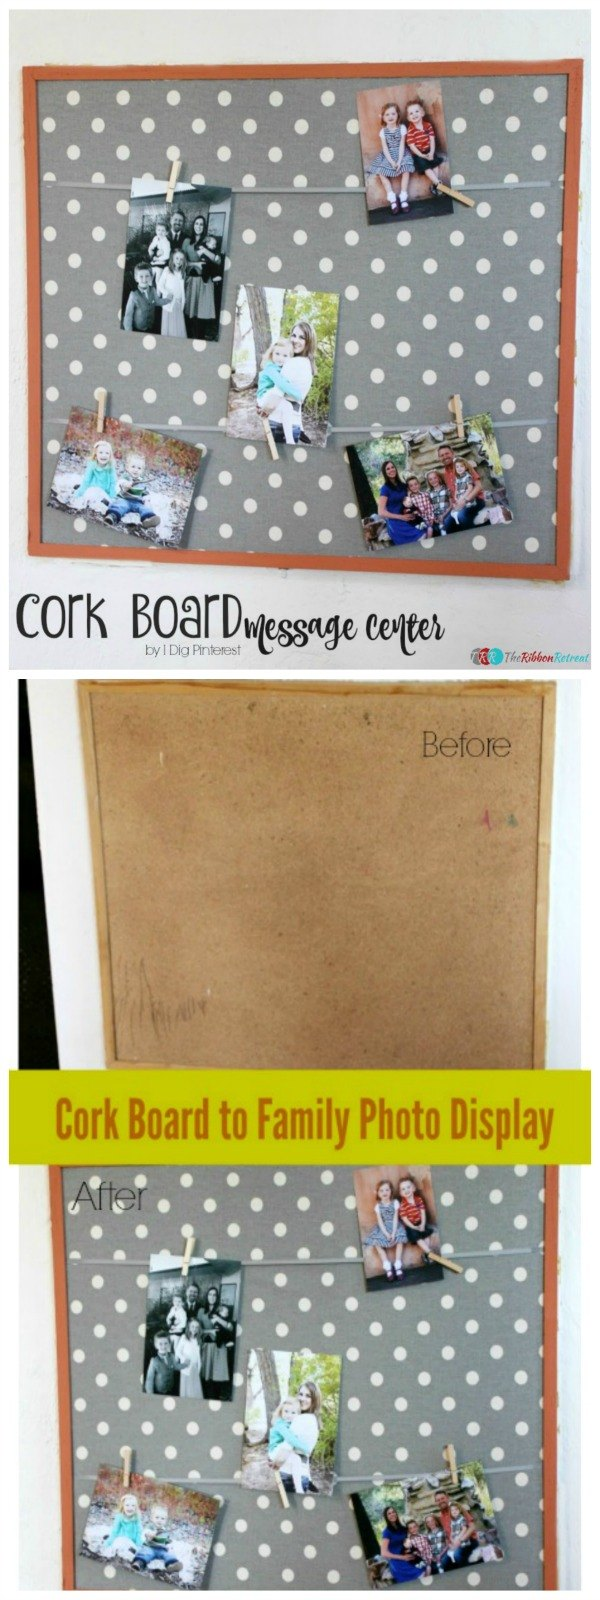 Cork Board Message Center - The Ribbon Retreat Blog